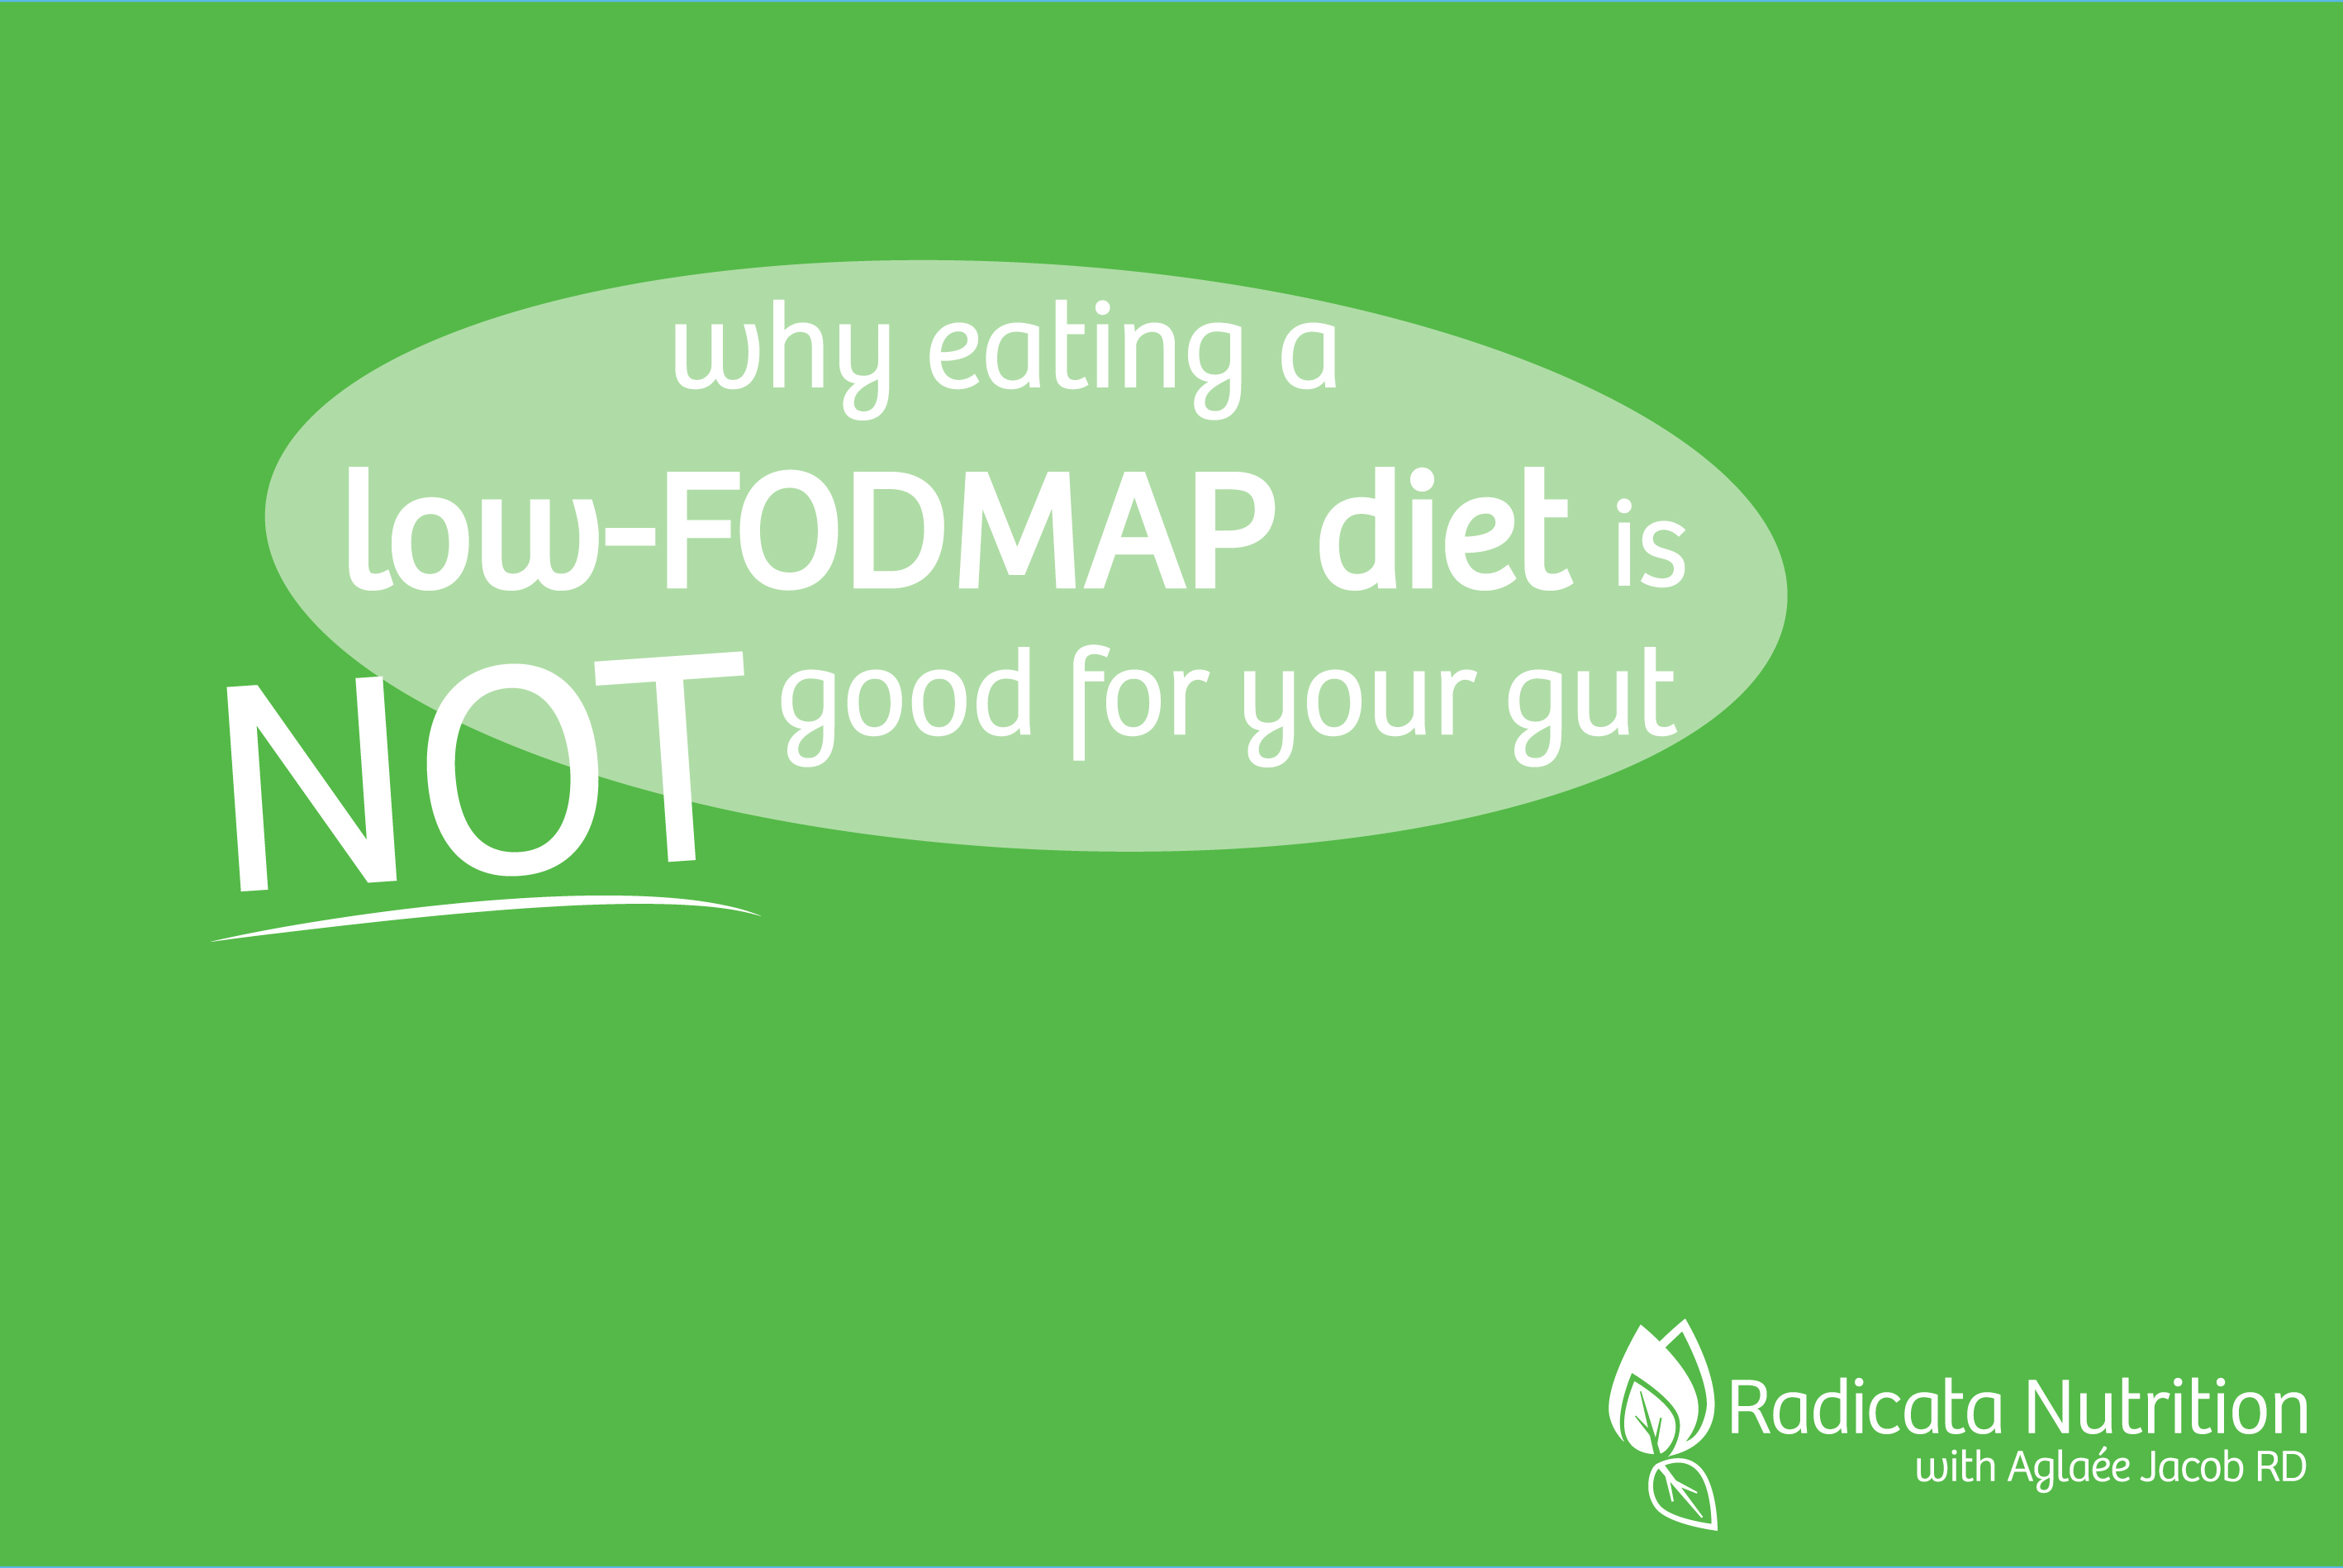 But You Might Need To Go Beyond The Typical Lowfodmap Diet To Heal Your  Gut… Unless You Want To Eat Lowfodmap For The Rest Of Your Life And  Deprive